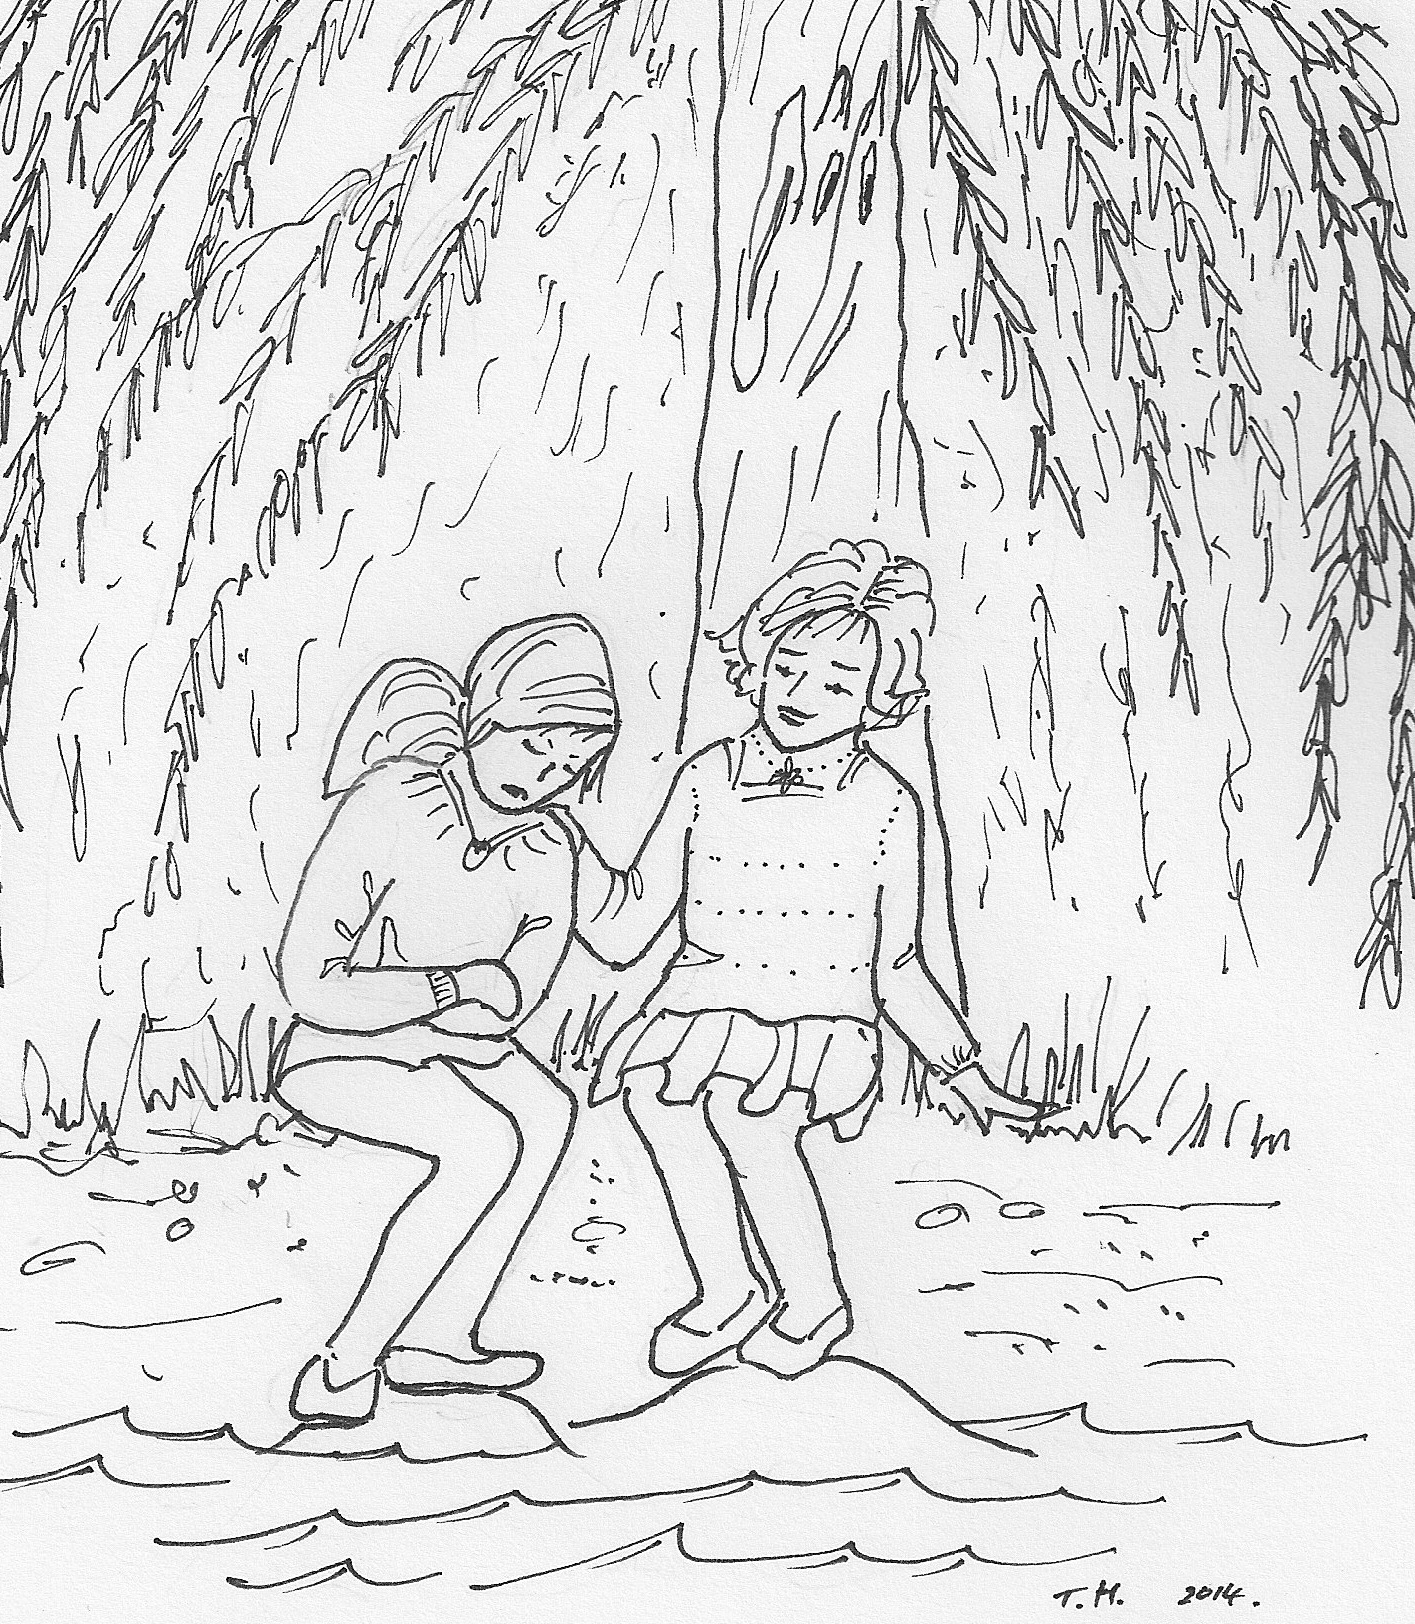 The Unhappy Weeping Willow Tree A Story For Young Girls 8 To 12